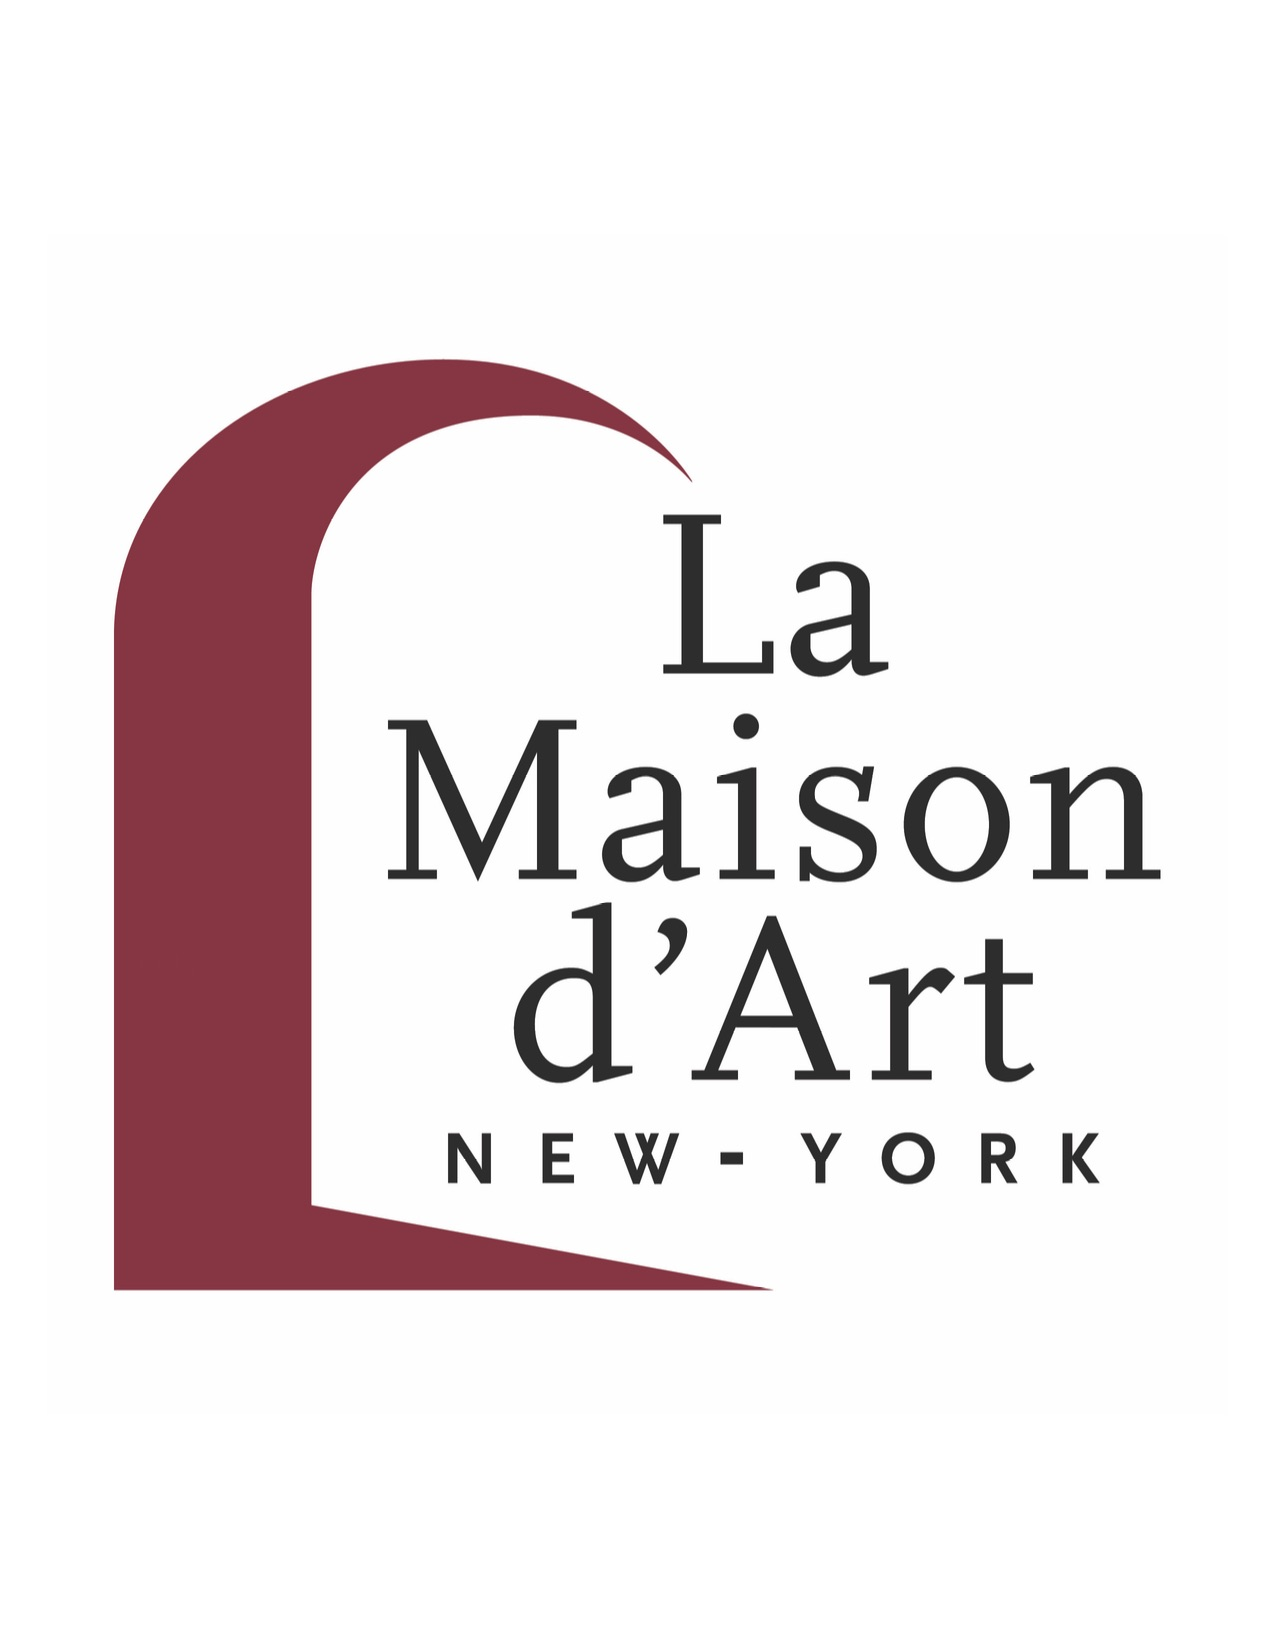 speak easy by french morning la maison d art new york 6th note please try to be on time given the logistical constraints of the event we can t start before everyone is here should you be unable to attend